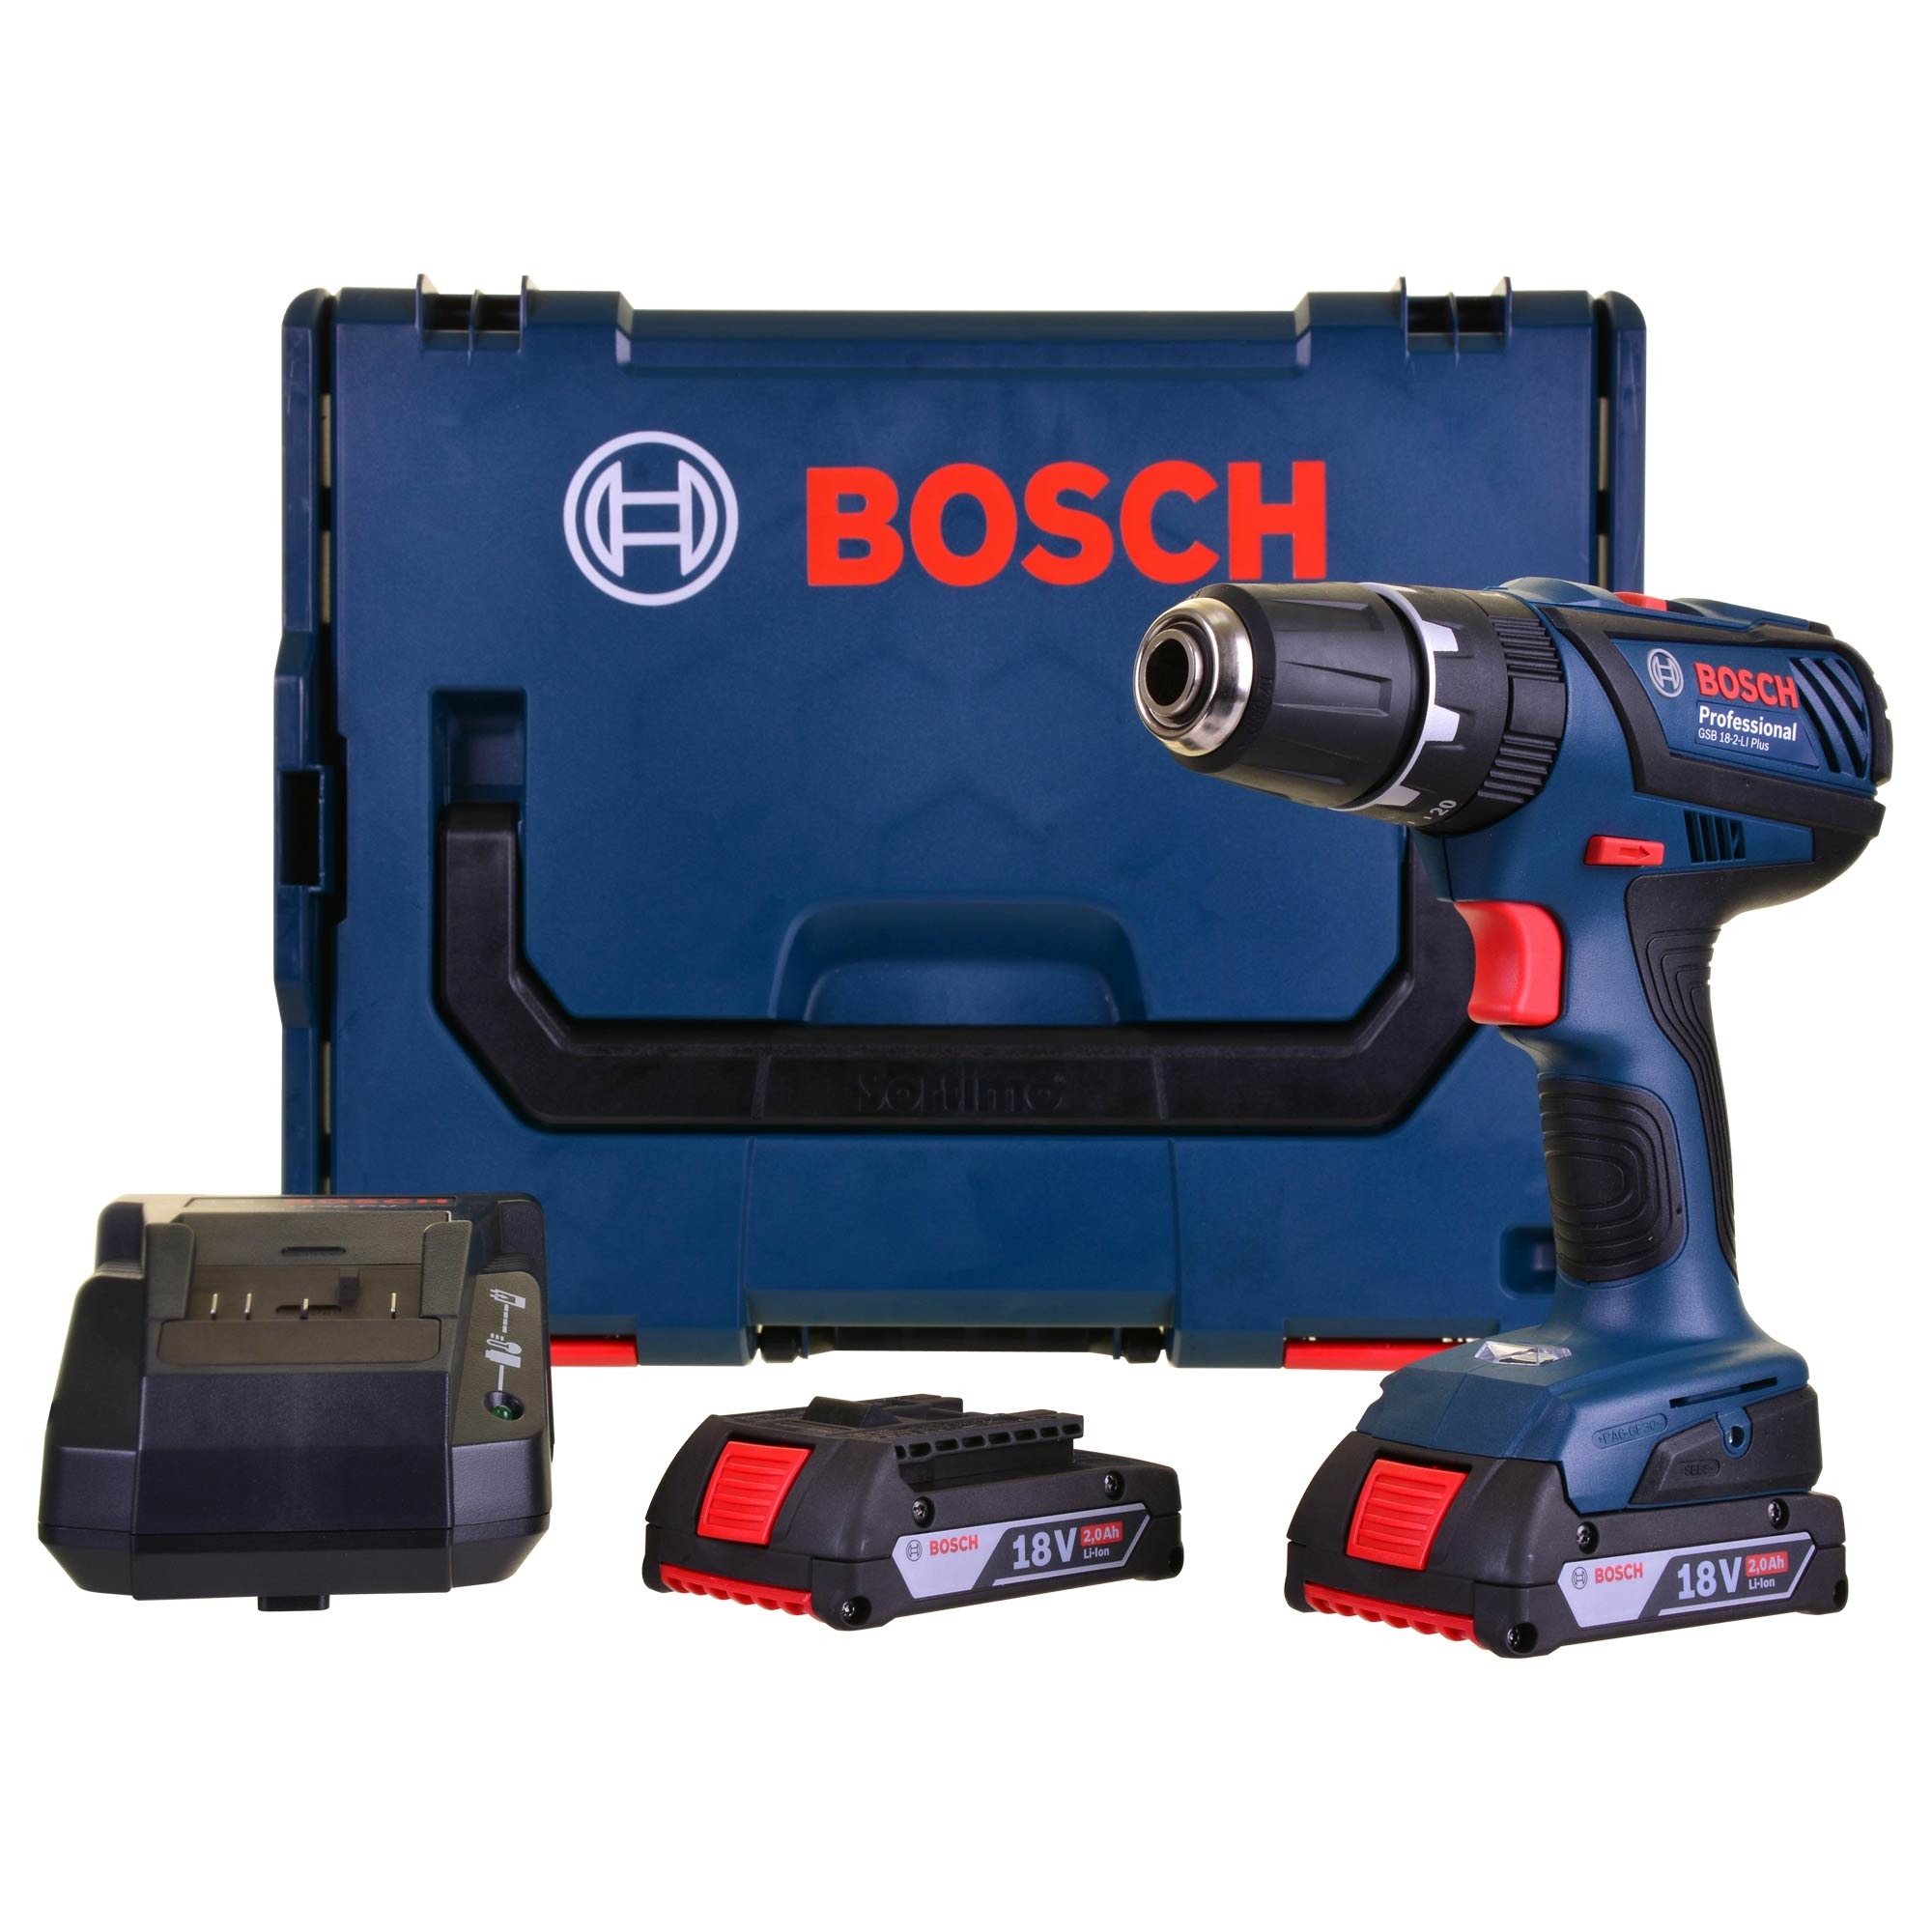 bosch gsb18 2 li plus bosch 18v li ion cordless hammer drill driver. Black Bedroom Furniture Sets. Home Design Ideas